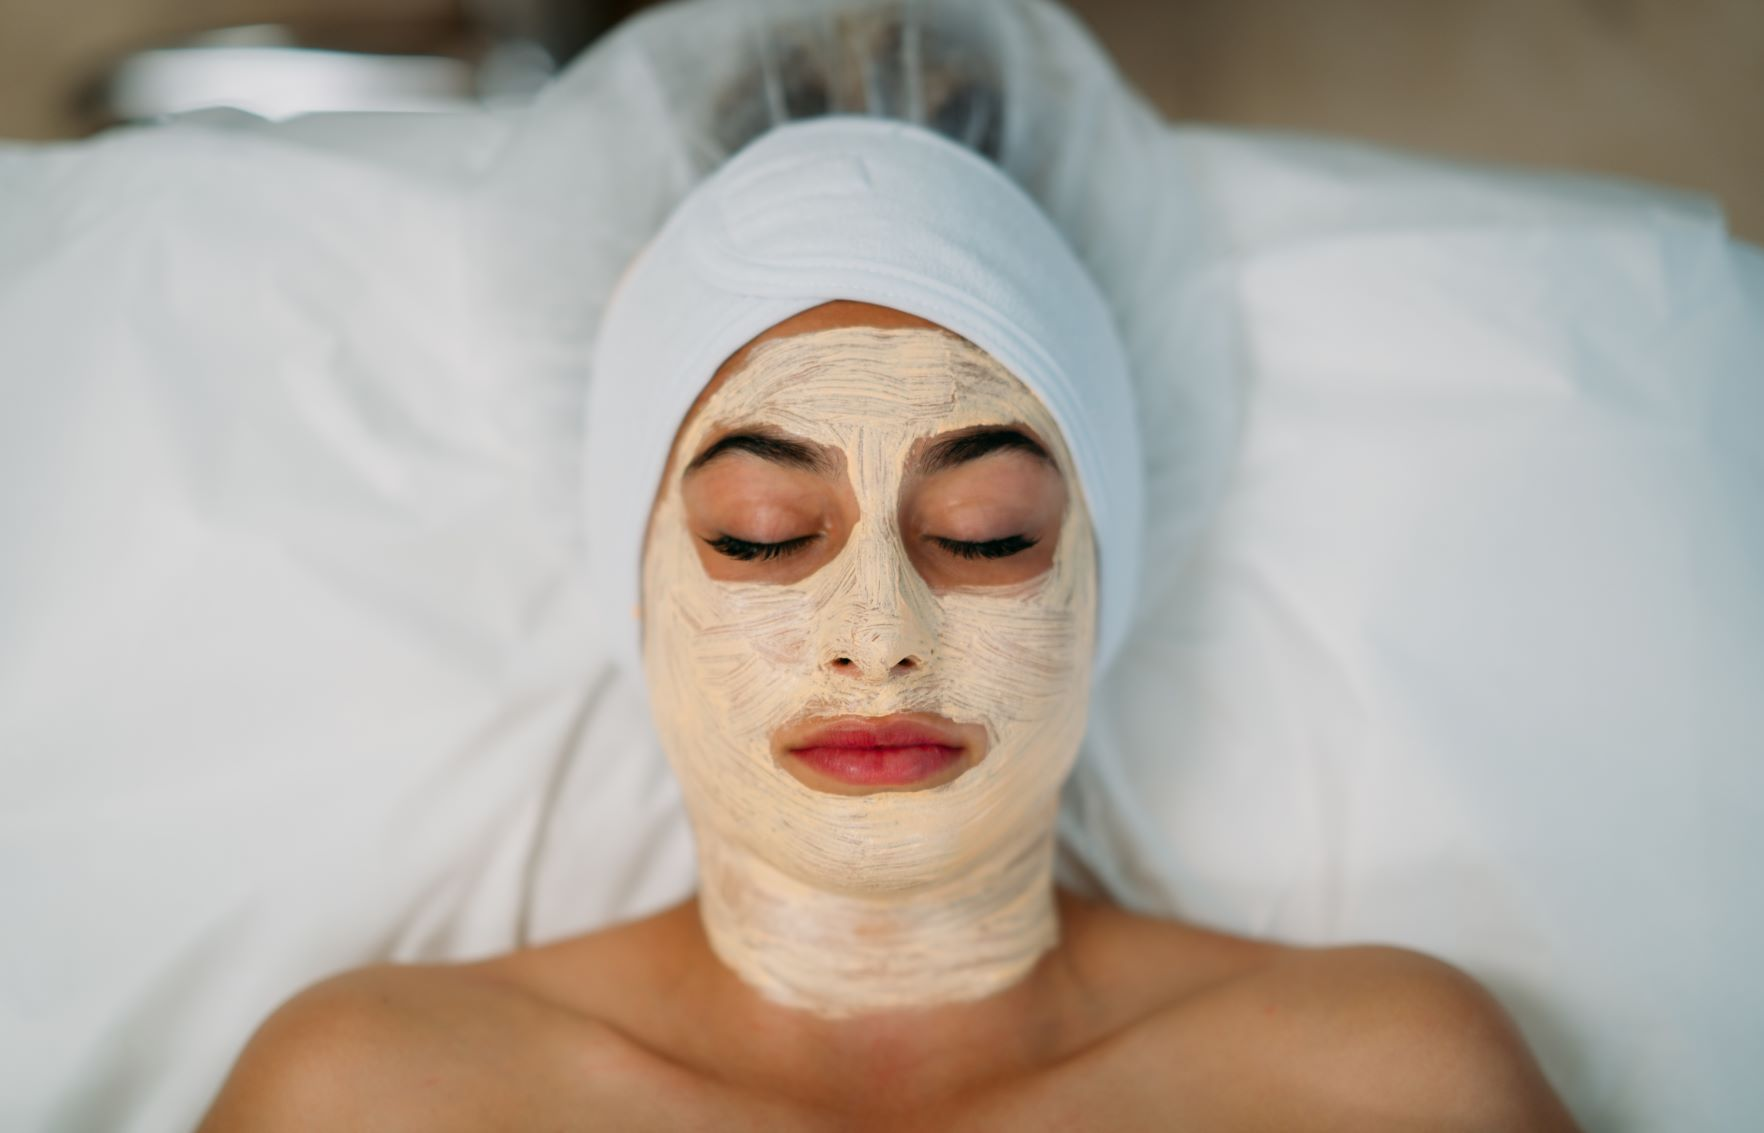 Client laying down with their eyes closed while receiving a facial treatment mask.